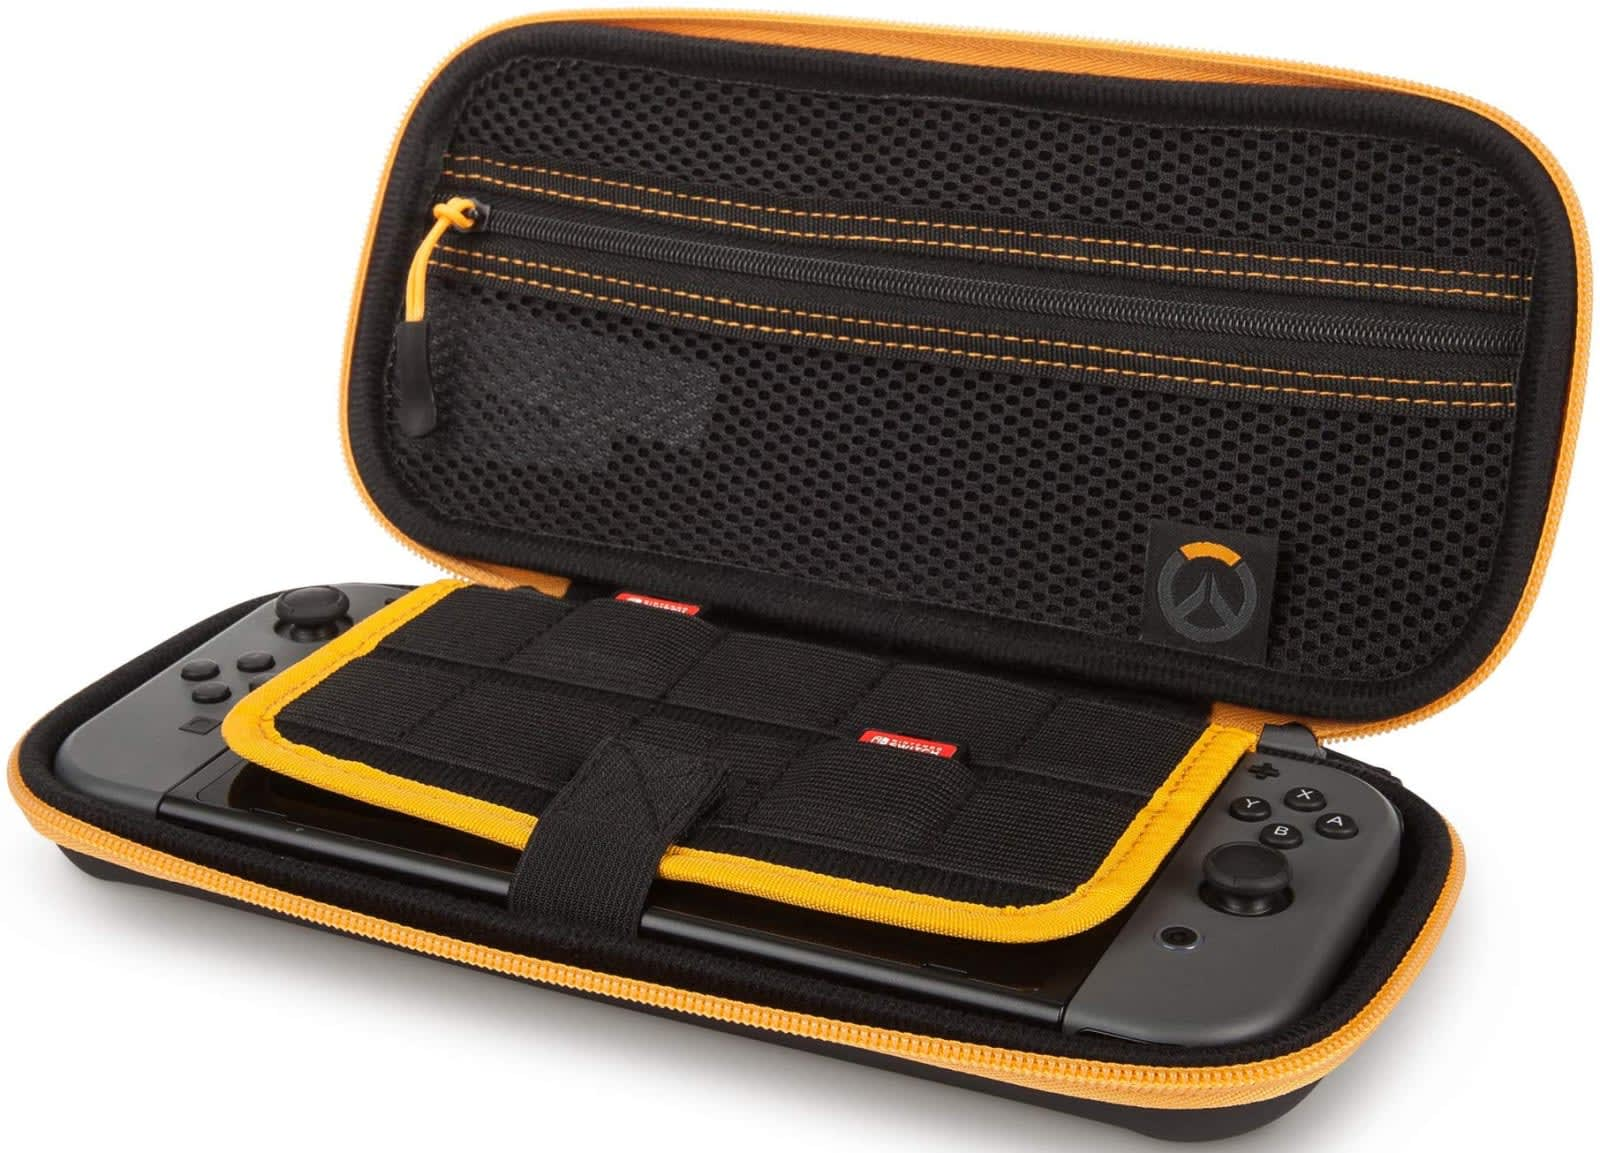 Overwatch' Switch case raises hopes for a port | Engadget